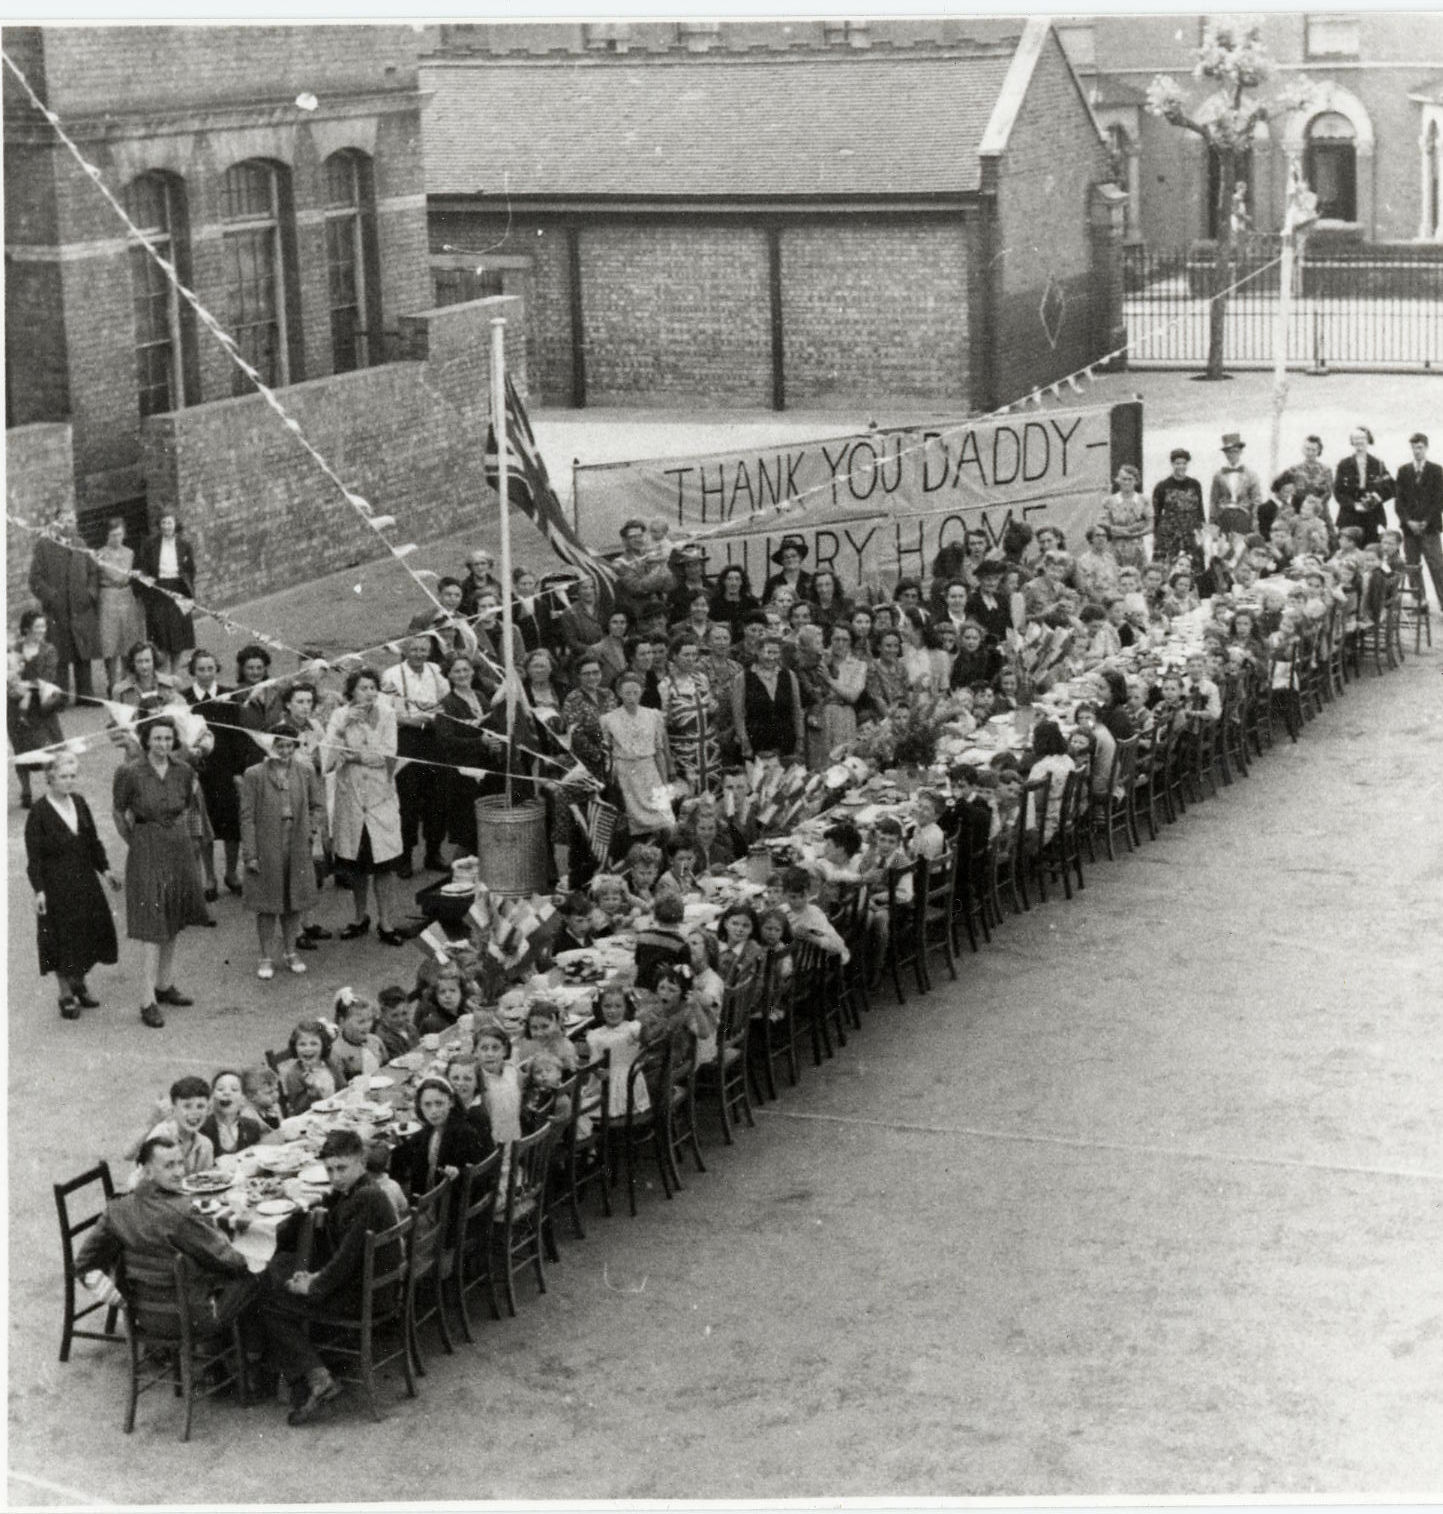 Families sitting at tables outside during welcome home party for their fathers after the Second World War